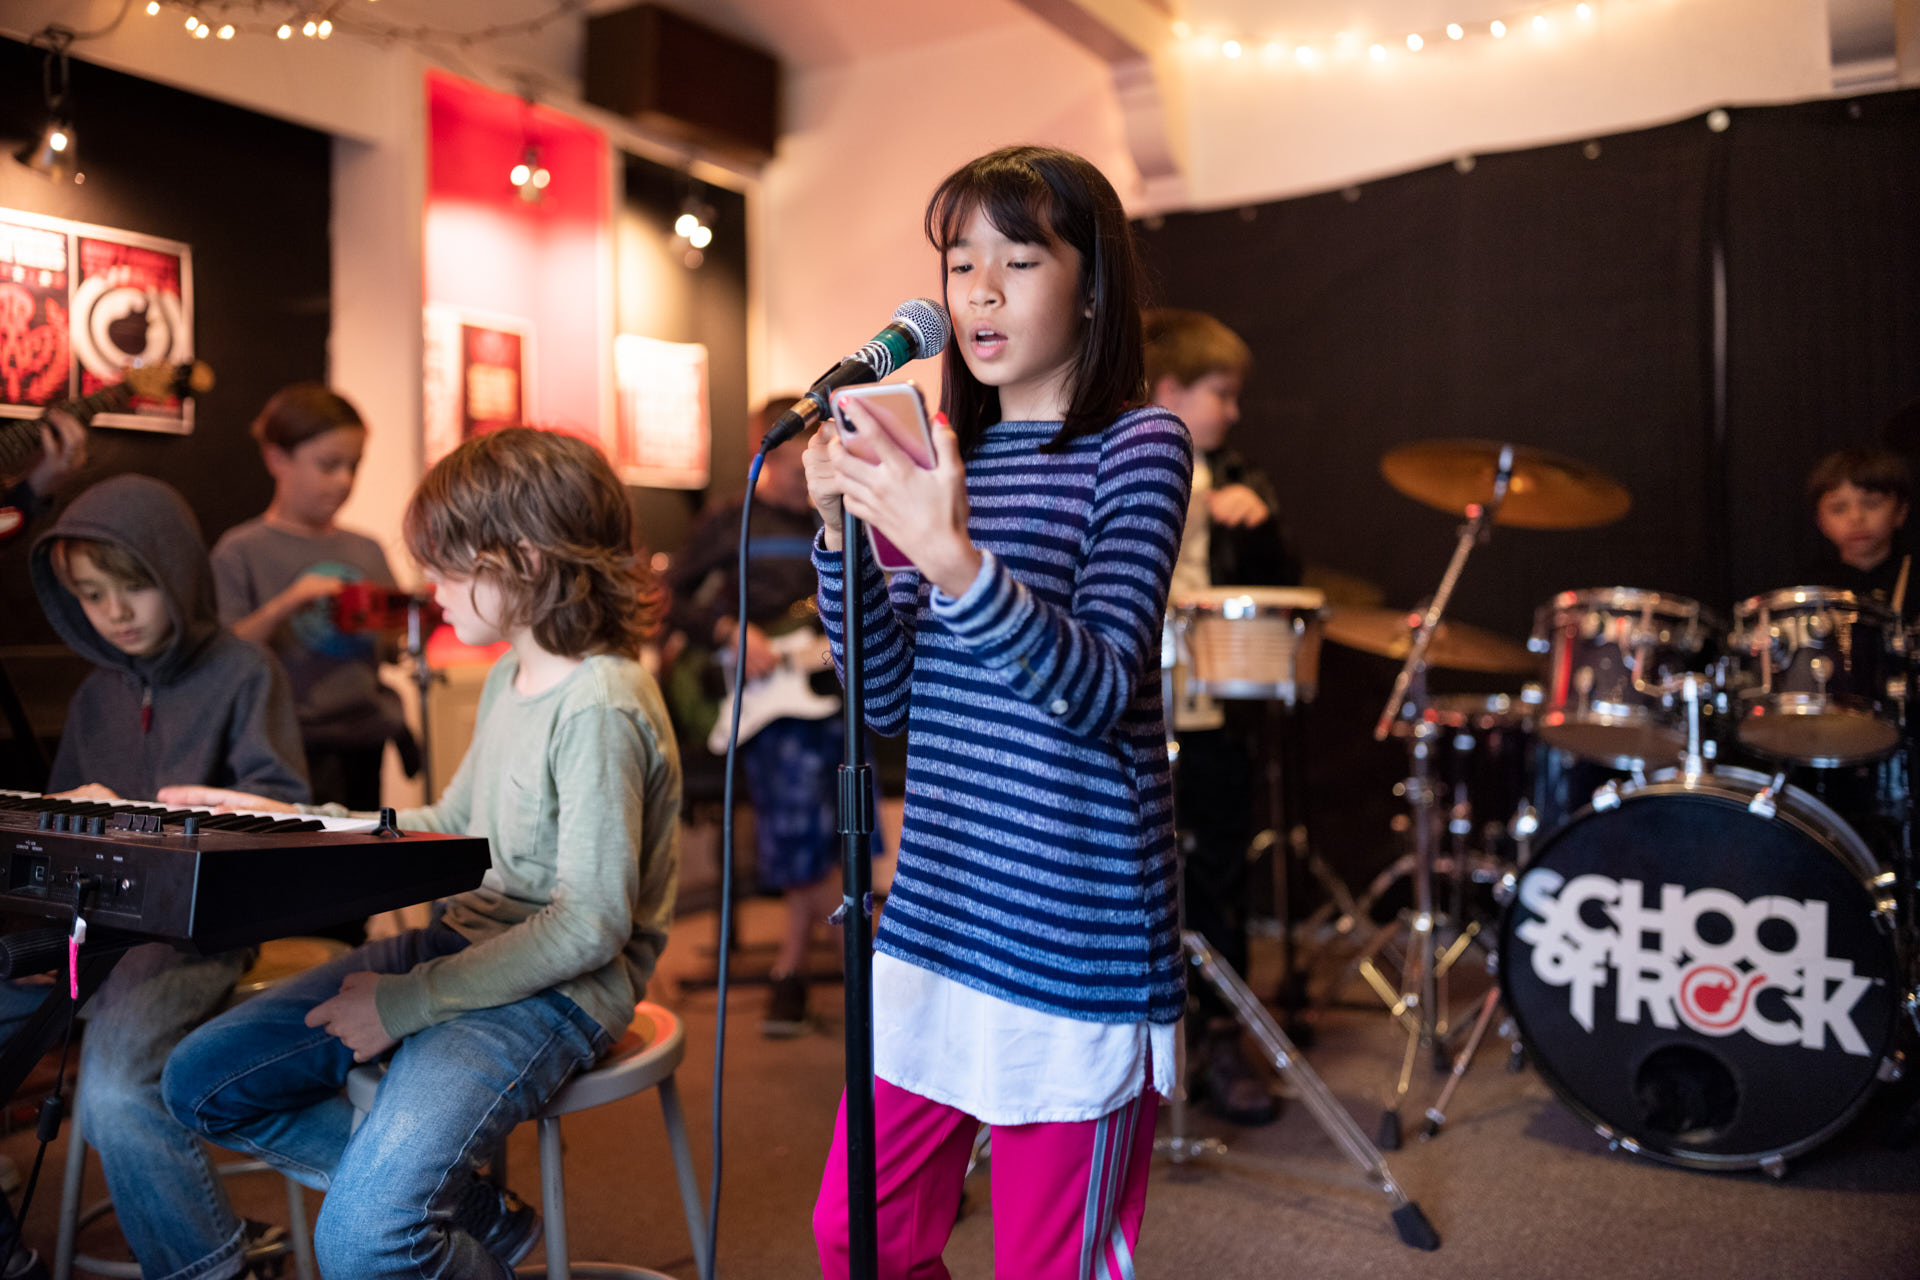 school-of-rock-teaches-the-universal-language-of-music-5